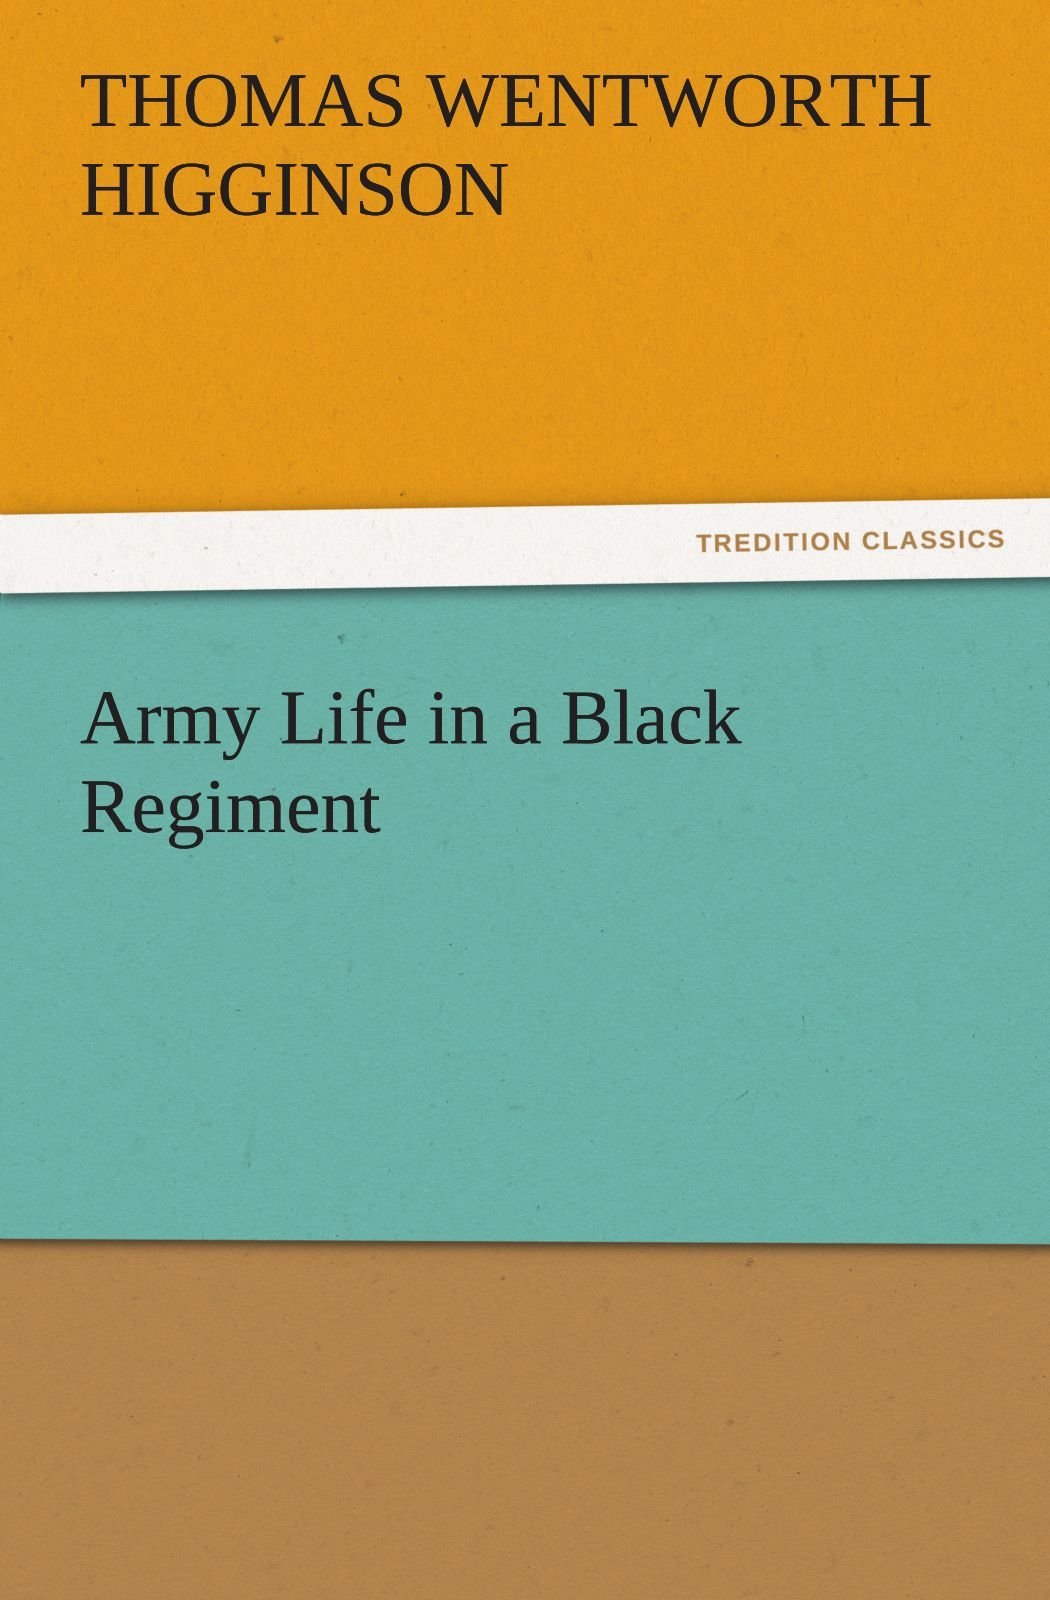 Download Army Life in a Black Regiment (TREDITION CLASSICS) pdf